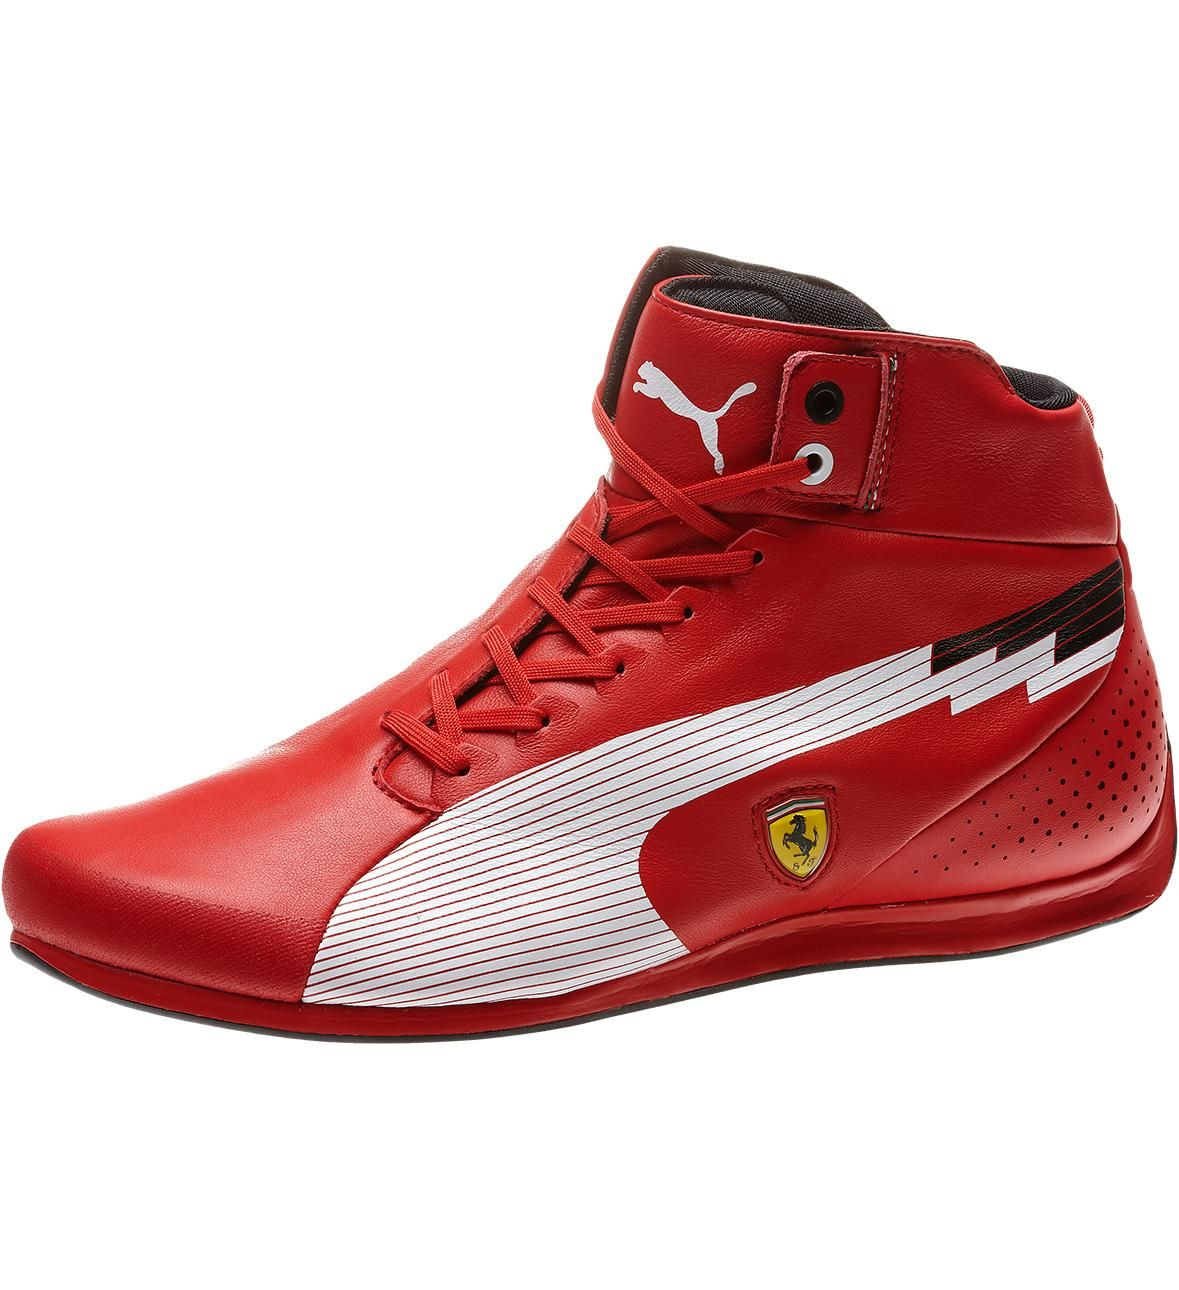 9e1e2d661f0 PUMA Ferrari evoSPEED Mid Shoes.  130.00